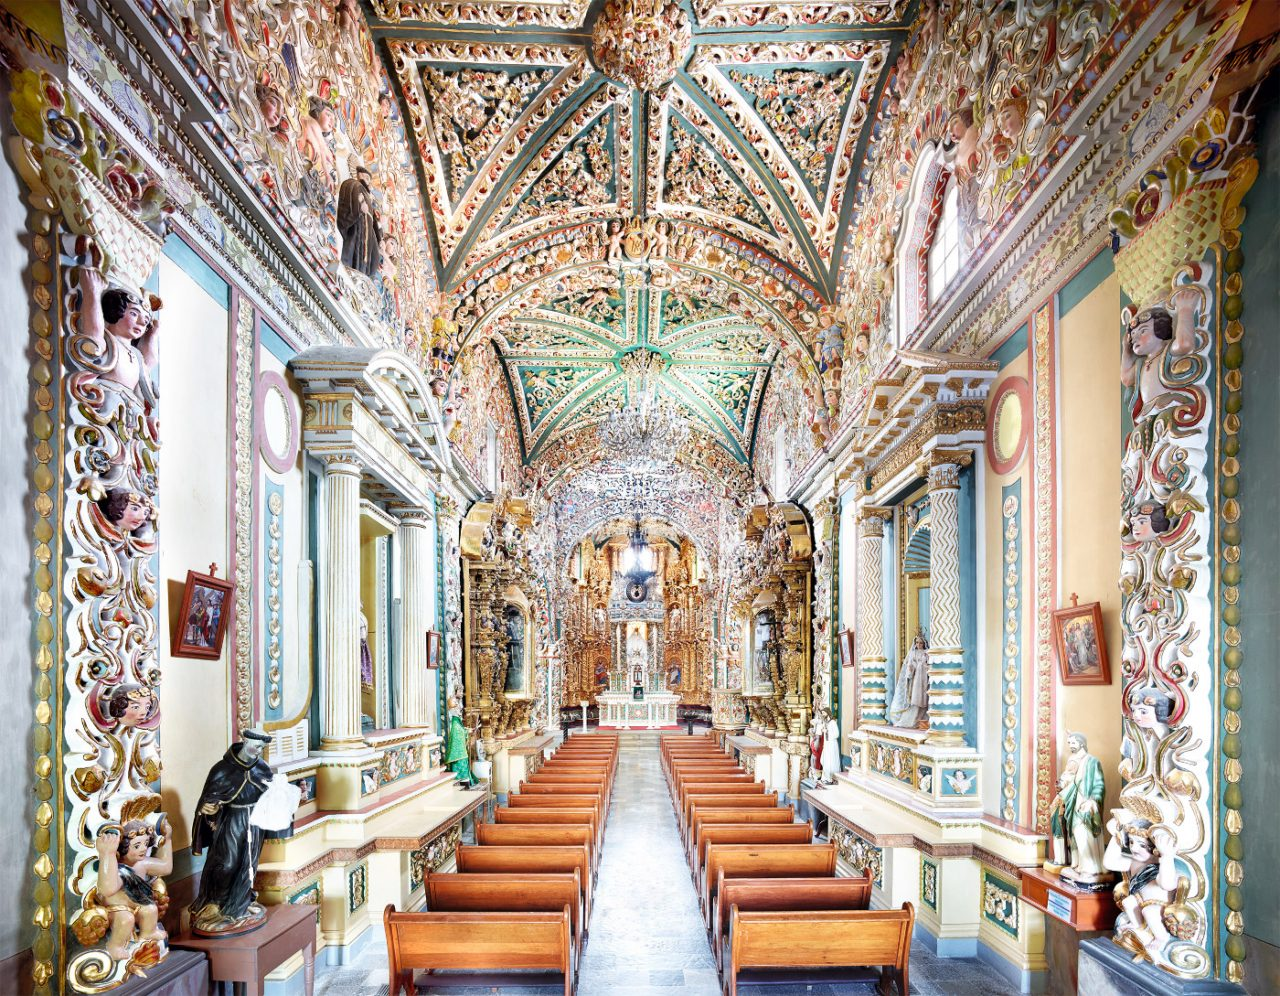 Interior of a highly decorated church